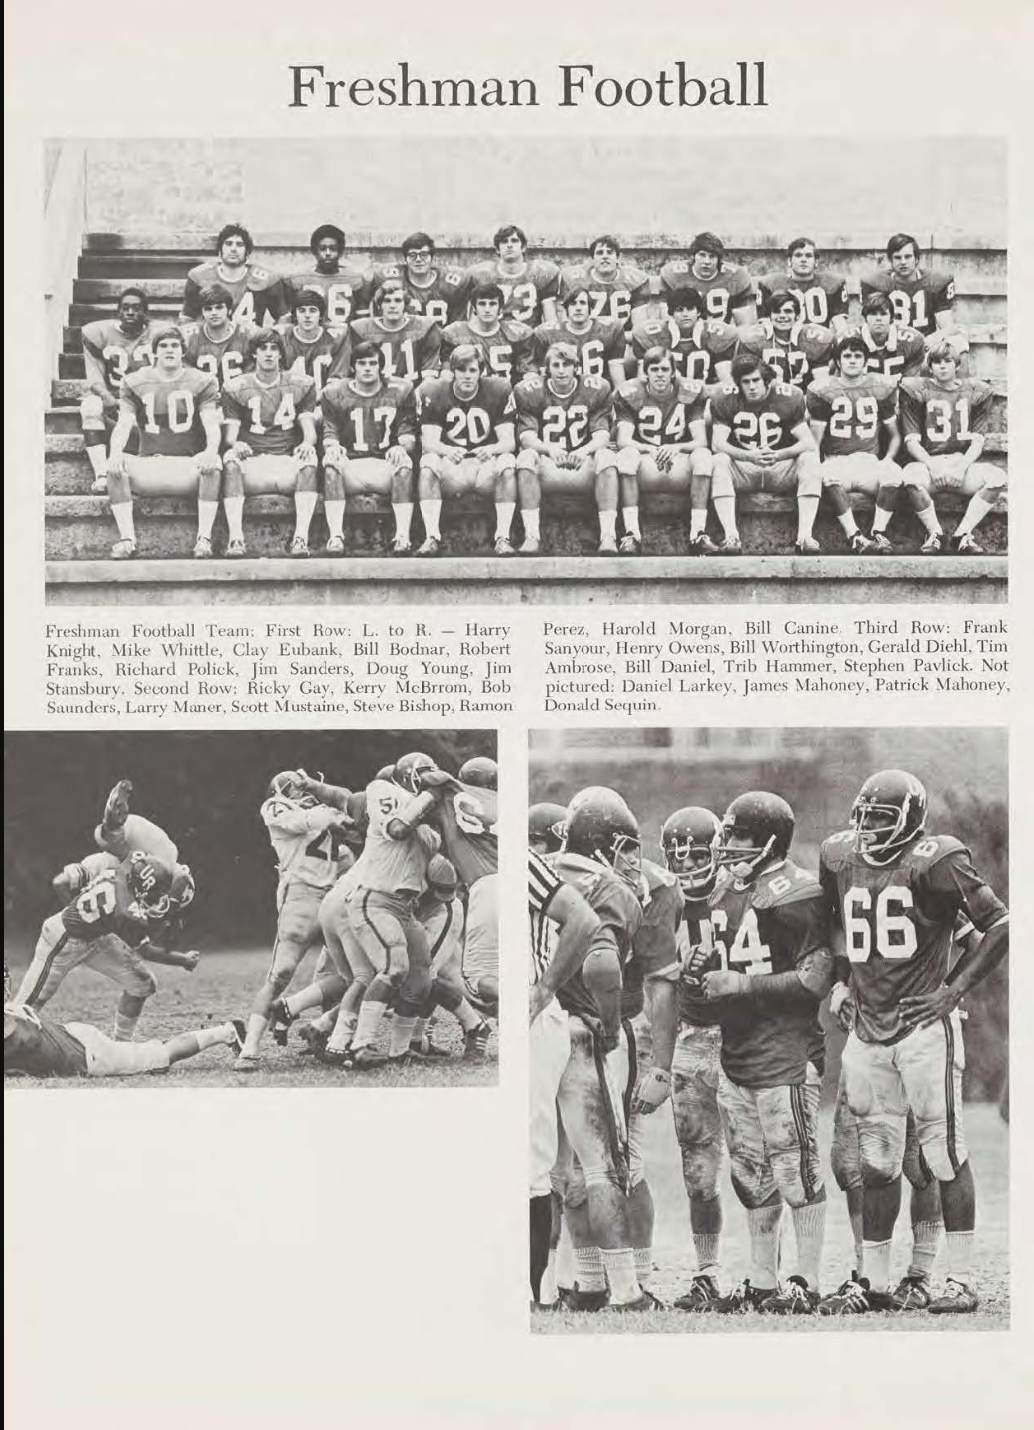 This photo was taken from the 1972 yearbook and features two black football players, Ricky Gay and Henry Owens.